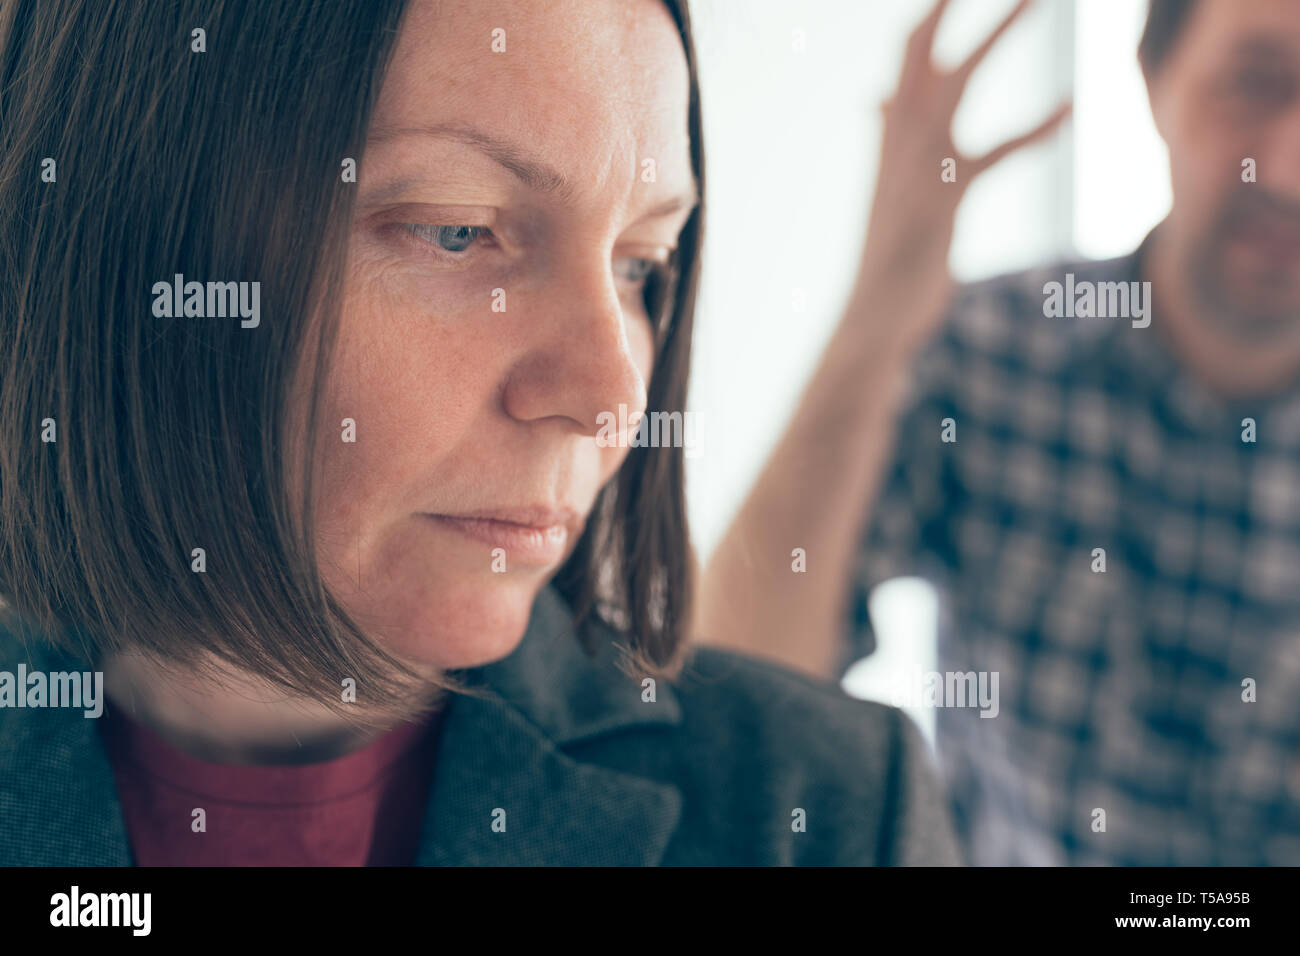 Husband and wife arguing, man yelling at woman in domestic dispute concept - Stock Image